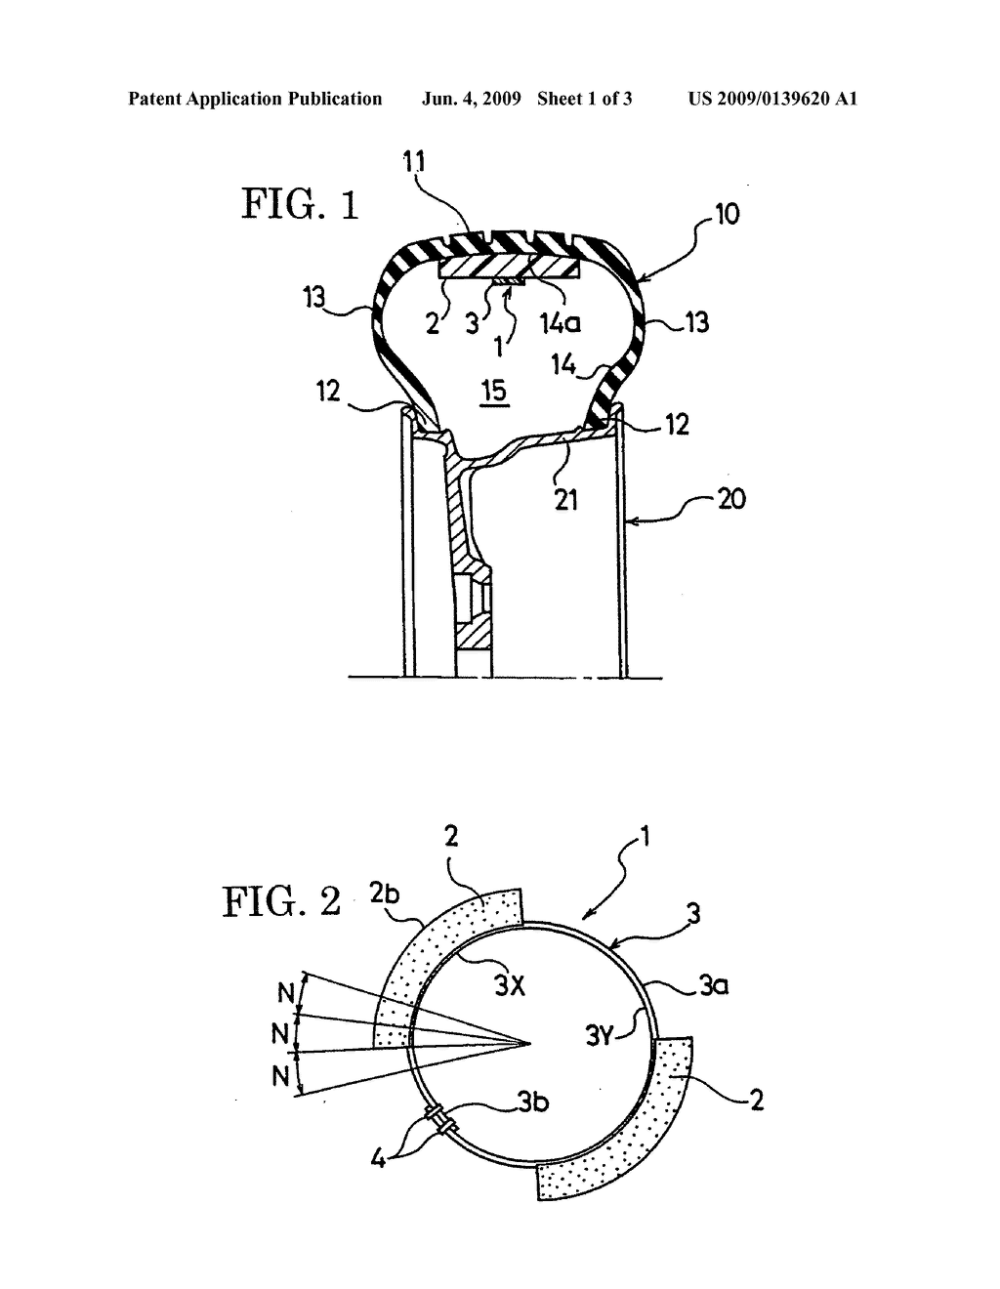 medium resolution of tire cavity resonance restricting device and pneumatic tire diagram schematic and image 02